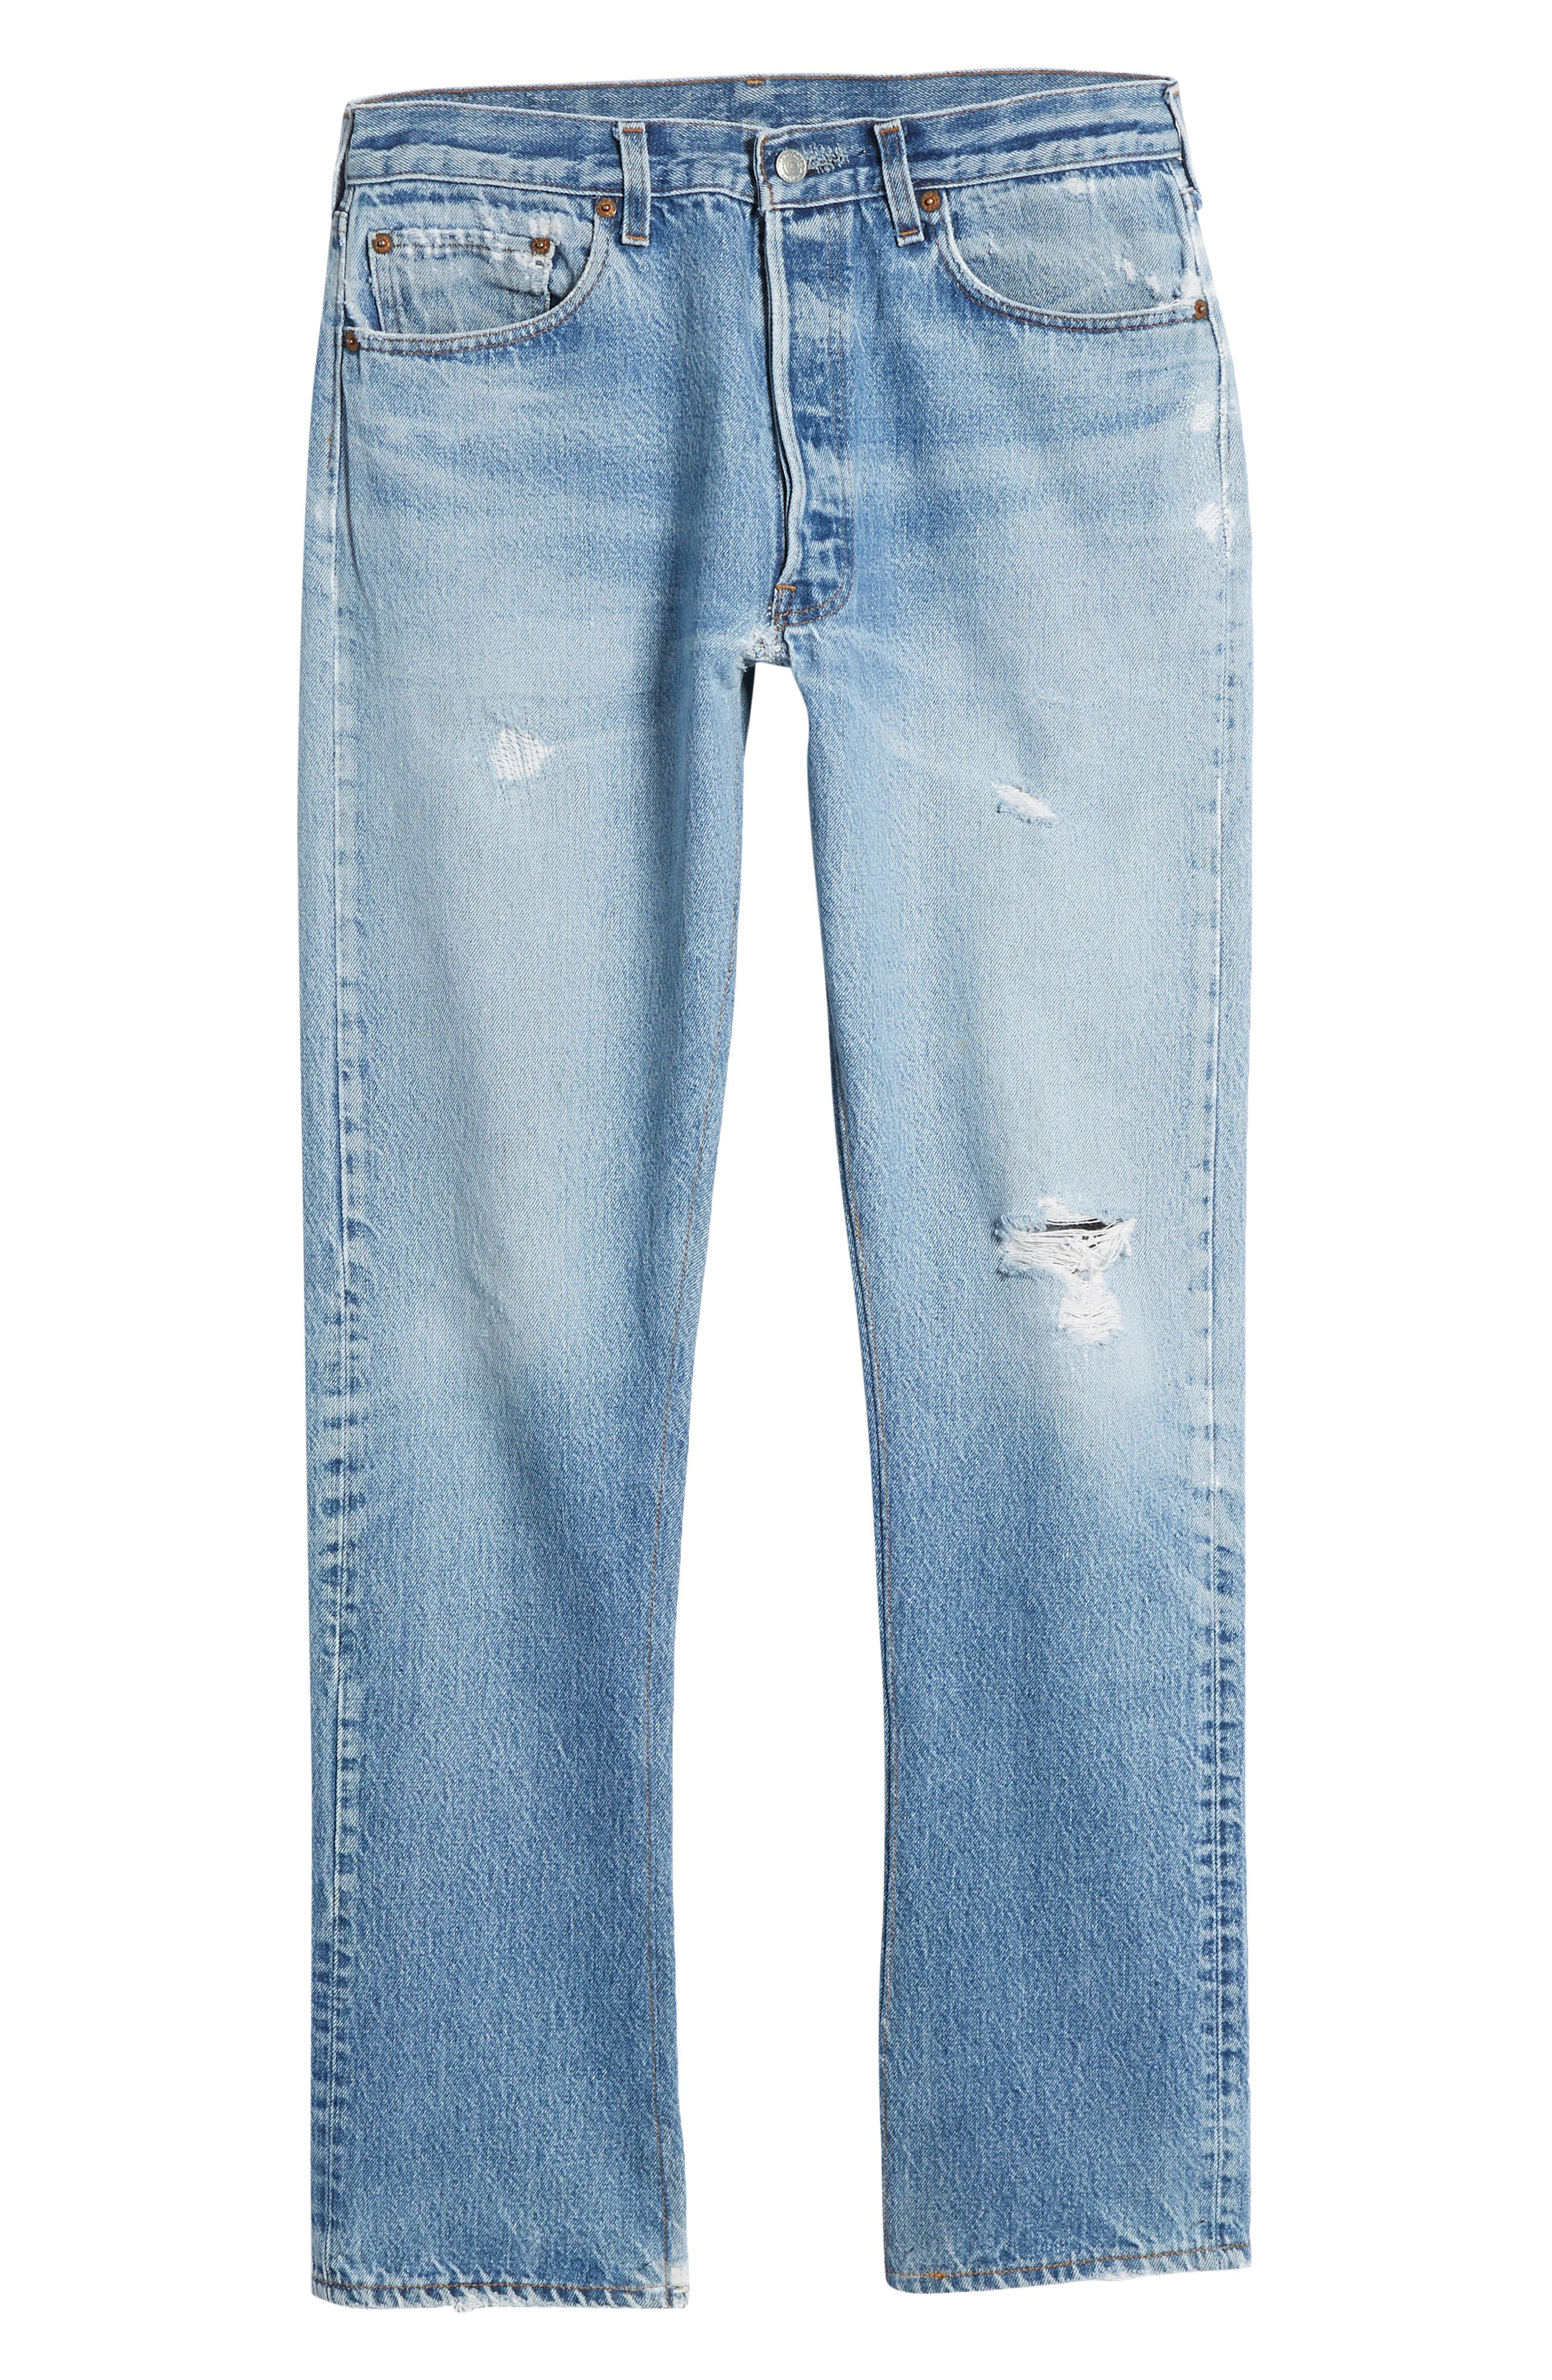 LEVI'S<SUP>®</SUP>, Authorized Vintage 501<sup>™</sup> Tapered Slim Fit Jeans, Alternate thumbnail 6, color, 400